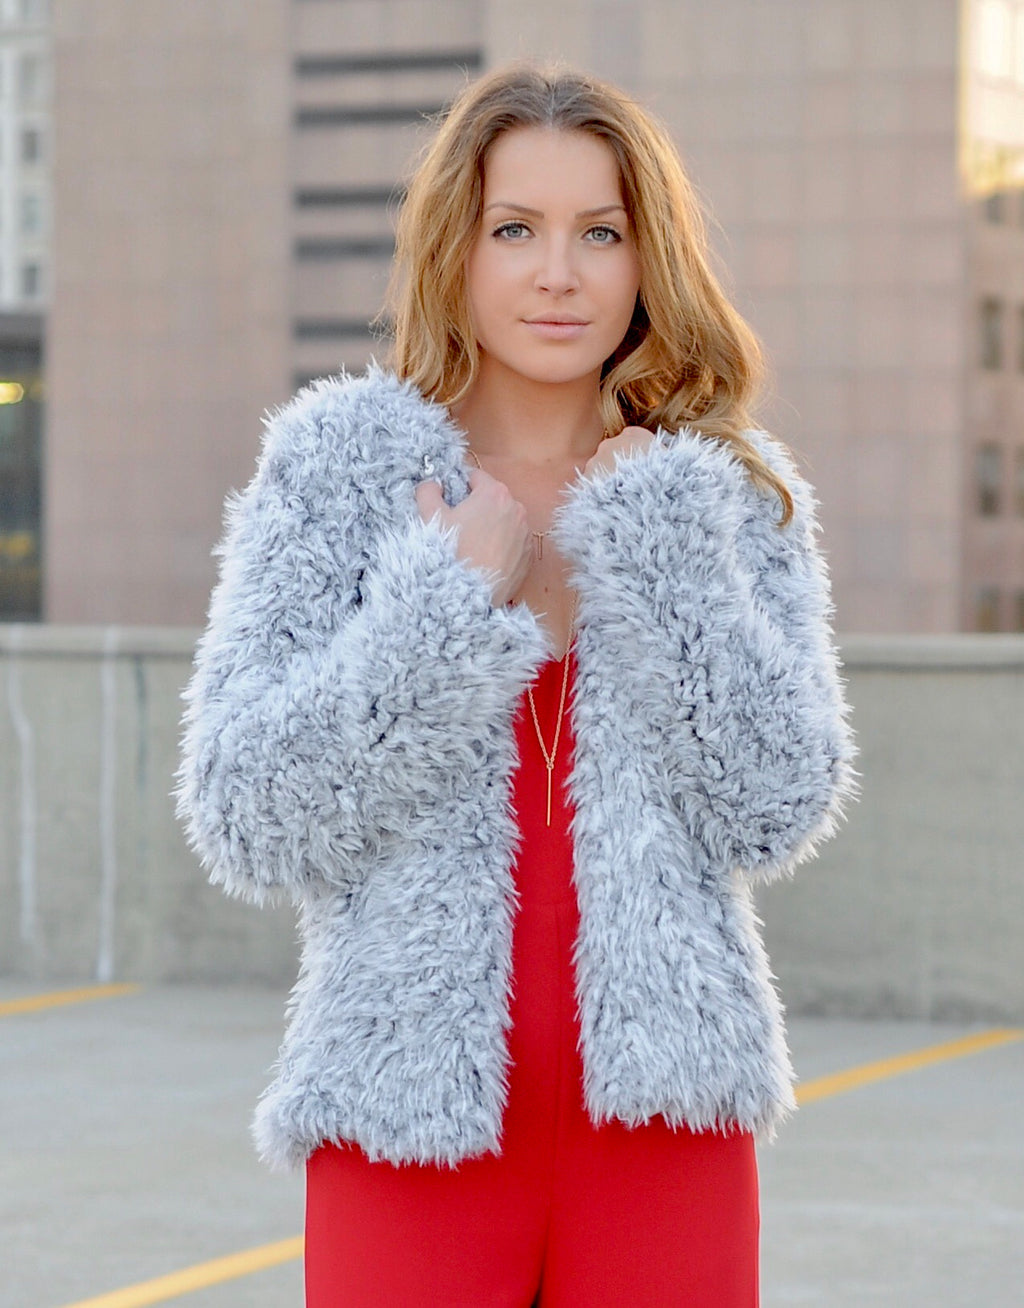 Heather Grey Furry Jacket